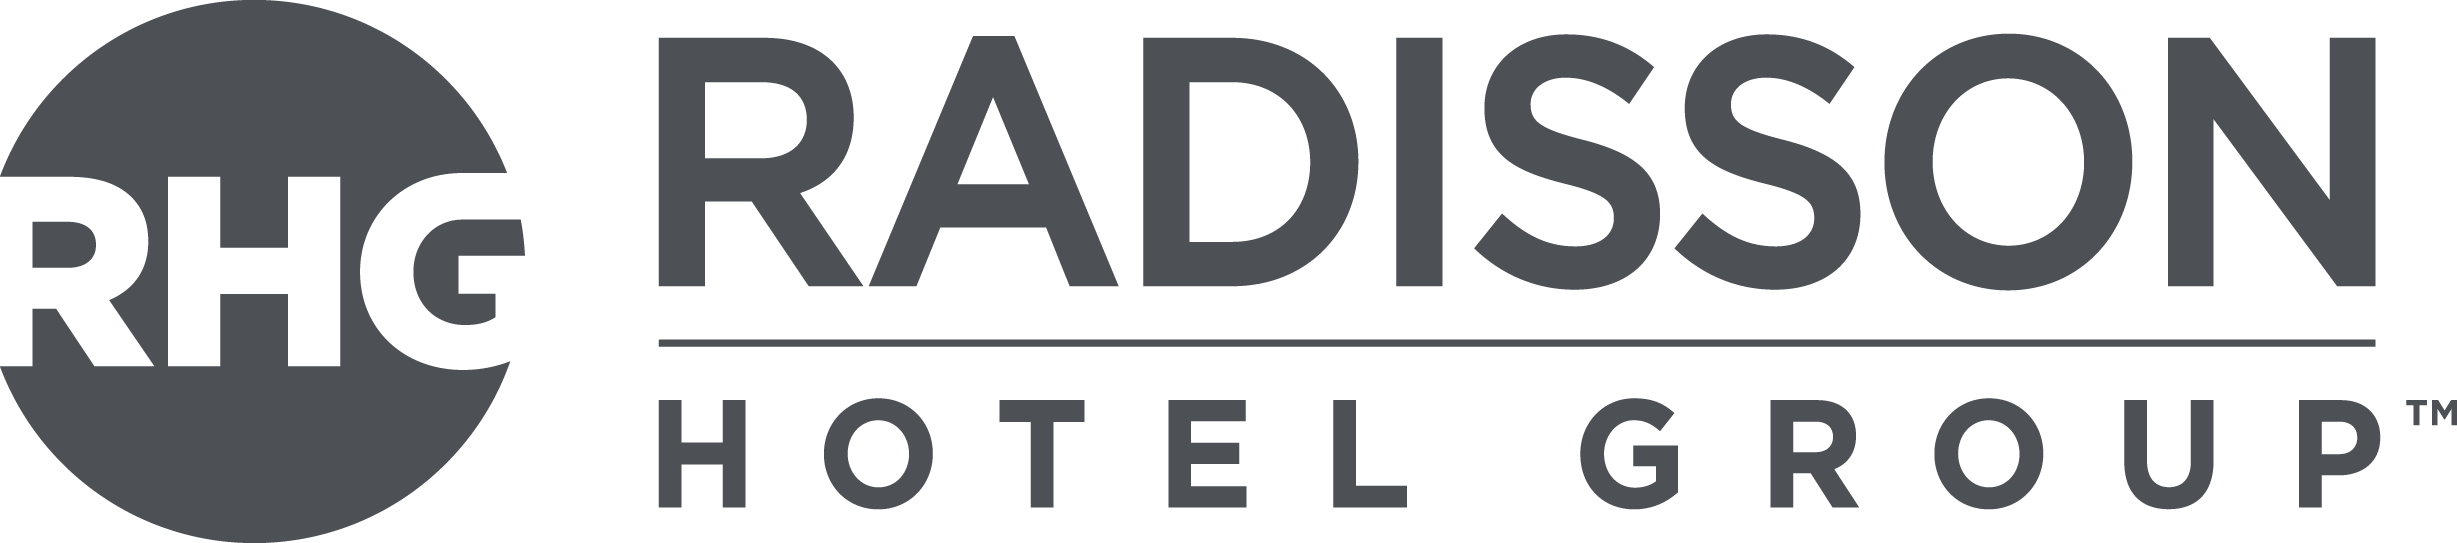 Find Radisson Hotel Group deals from Hotel Engine